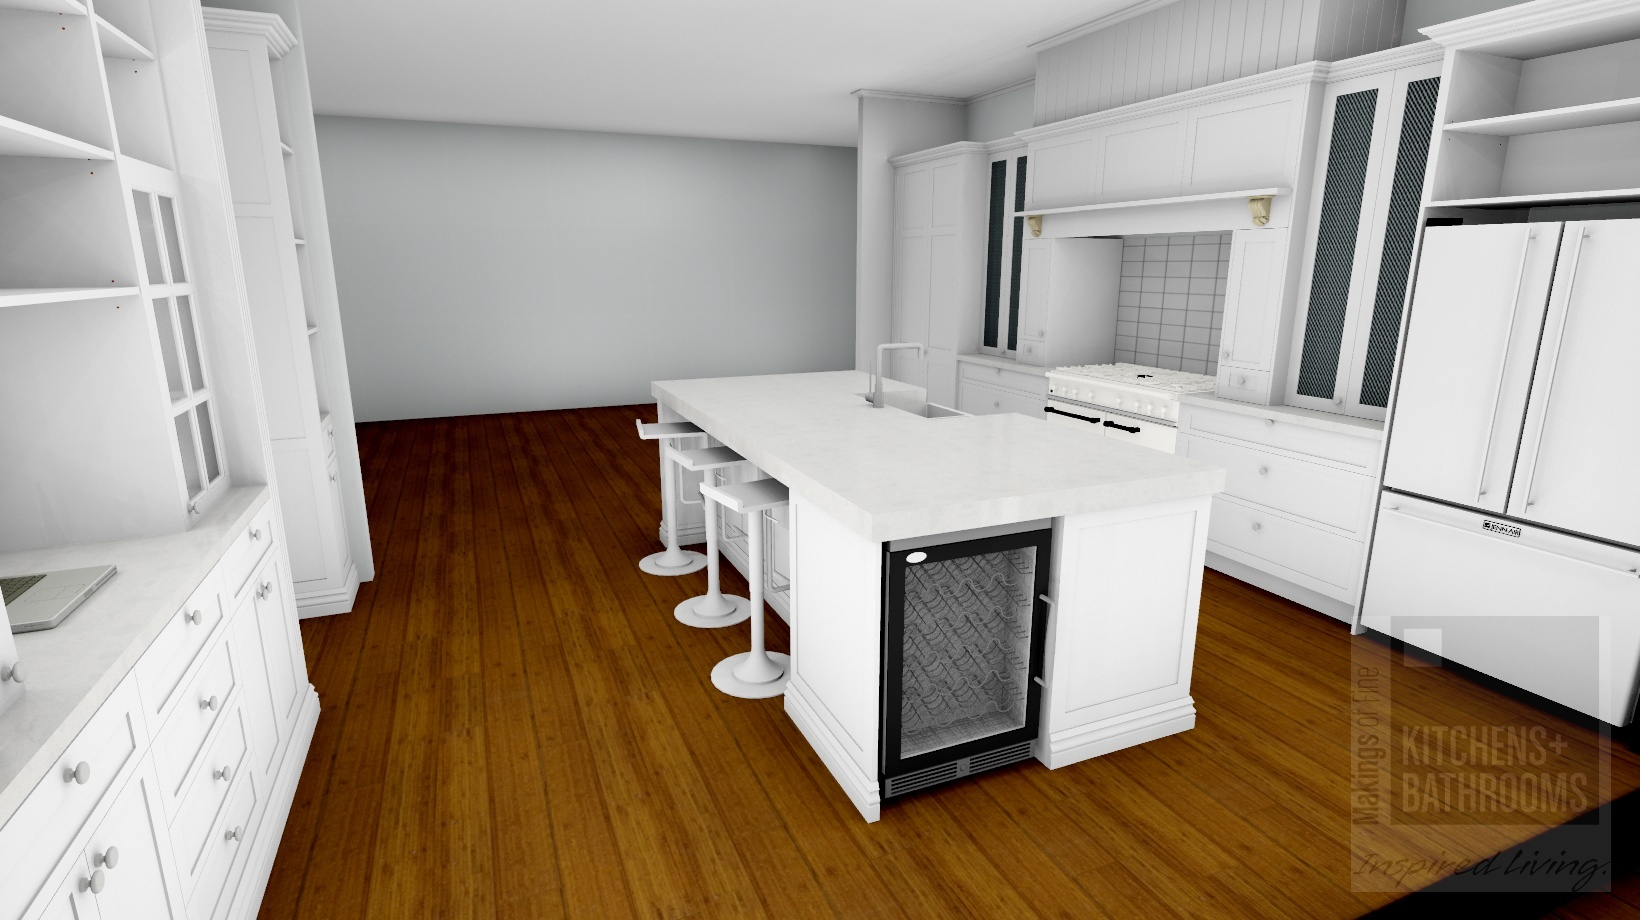 Digital model of kitchen | Photo: Makings of Fine Kitchens & Bathrooms